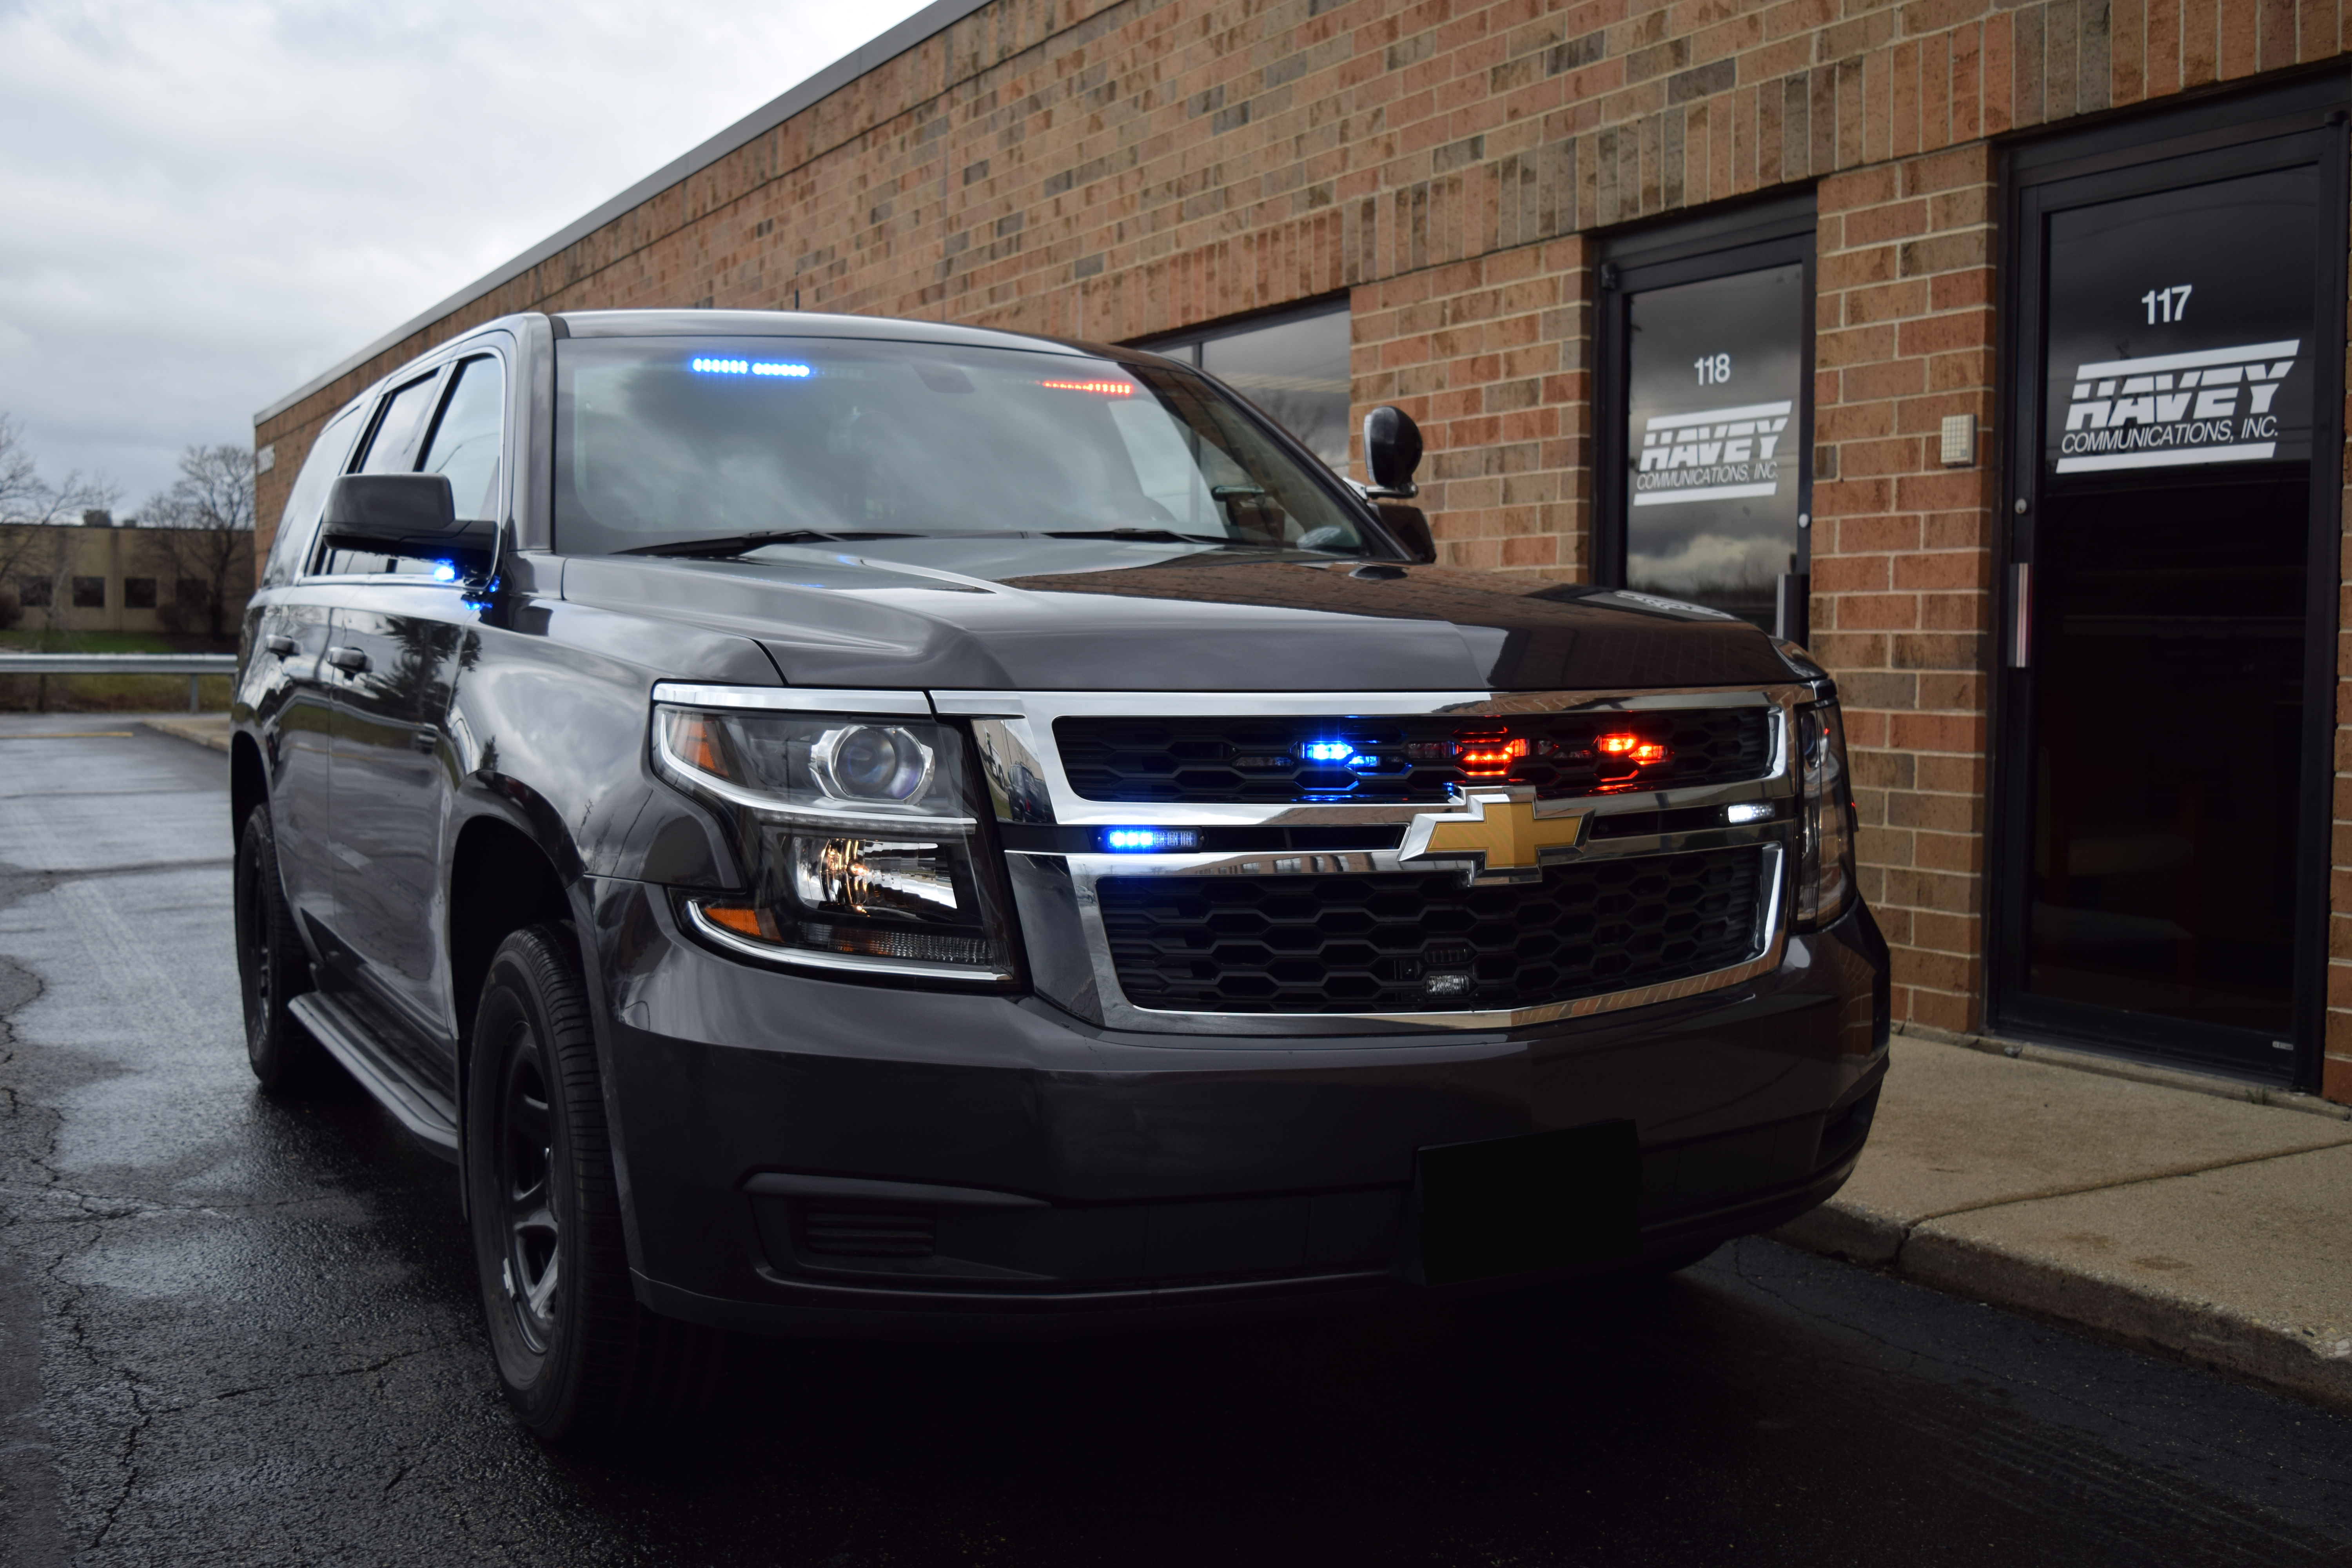 2017 Chevy Tahoe Pursuit K9 Unmarked Emergency Vehicle